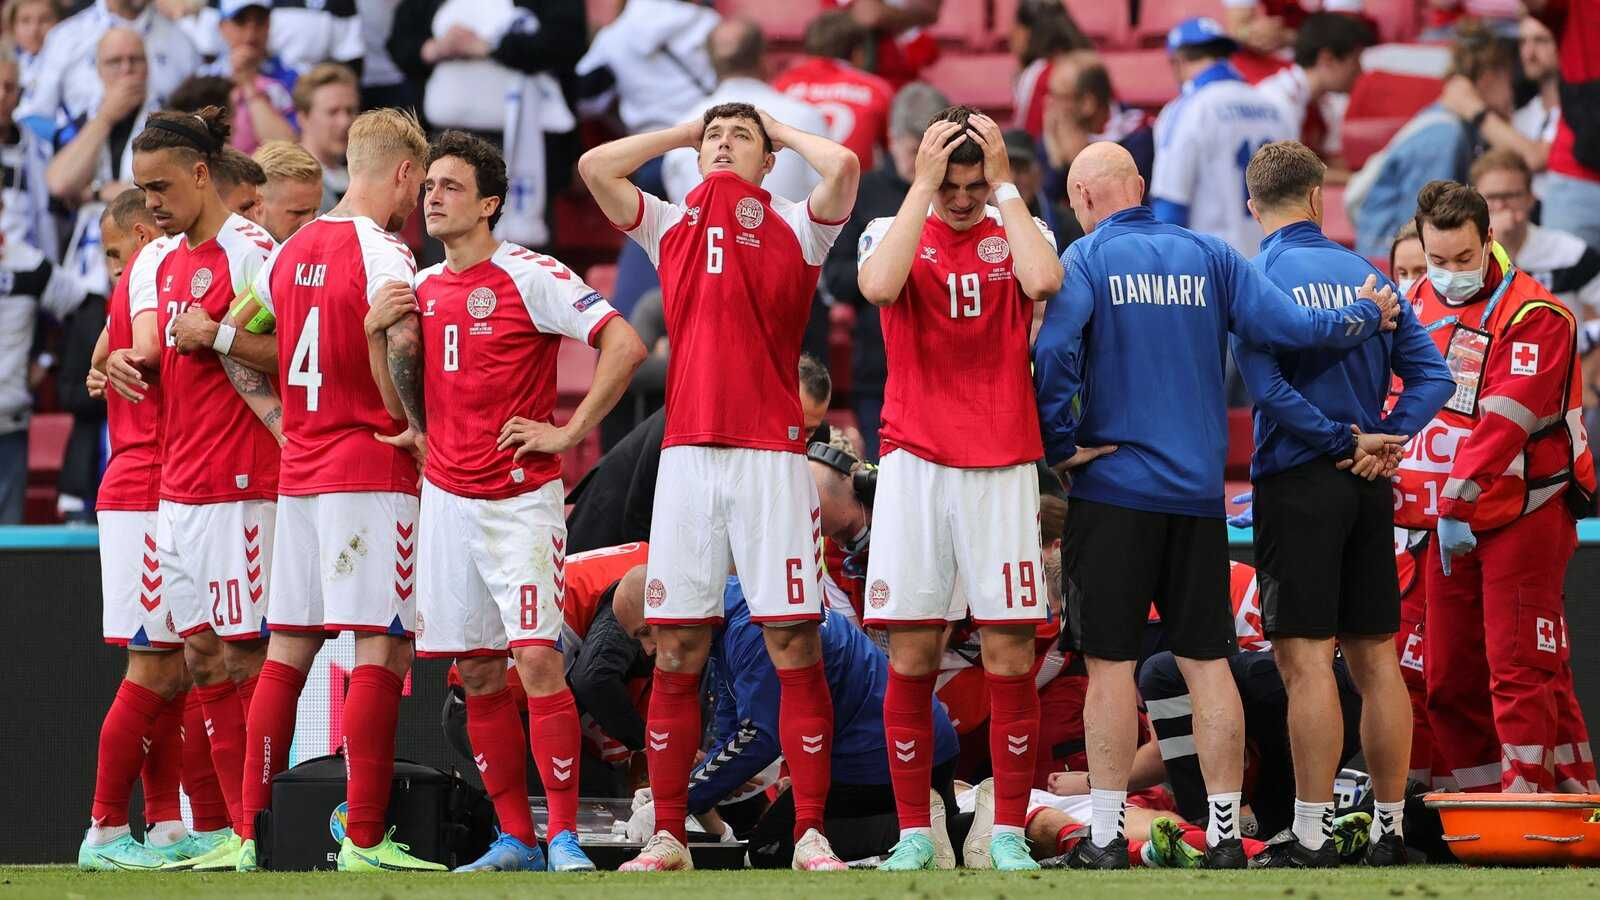 Christian Eriksen is tended to as his Denmark teammates create a ring around him to shield him from view.